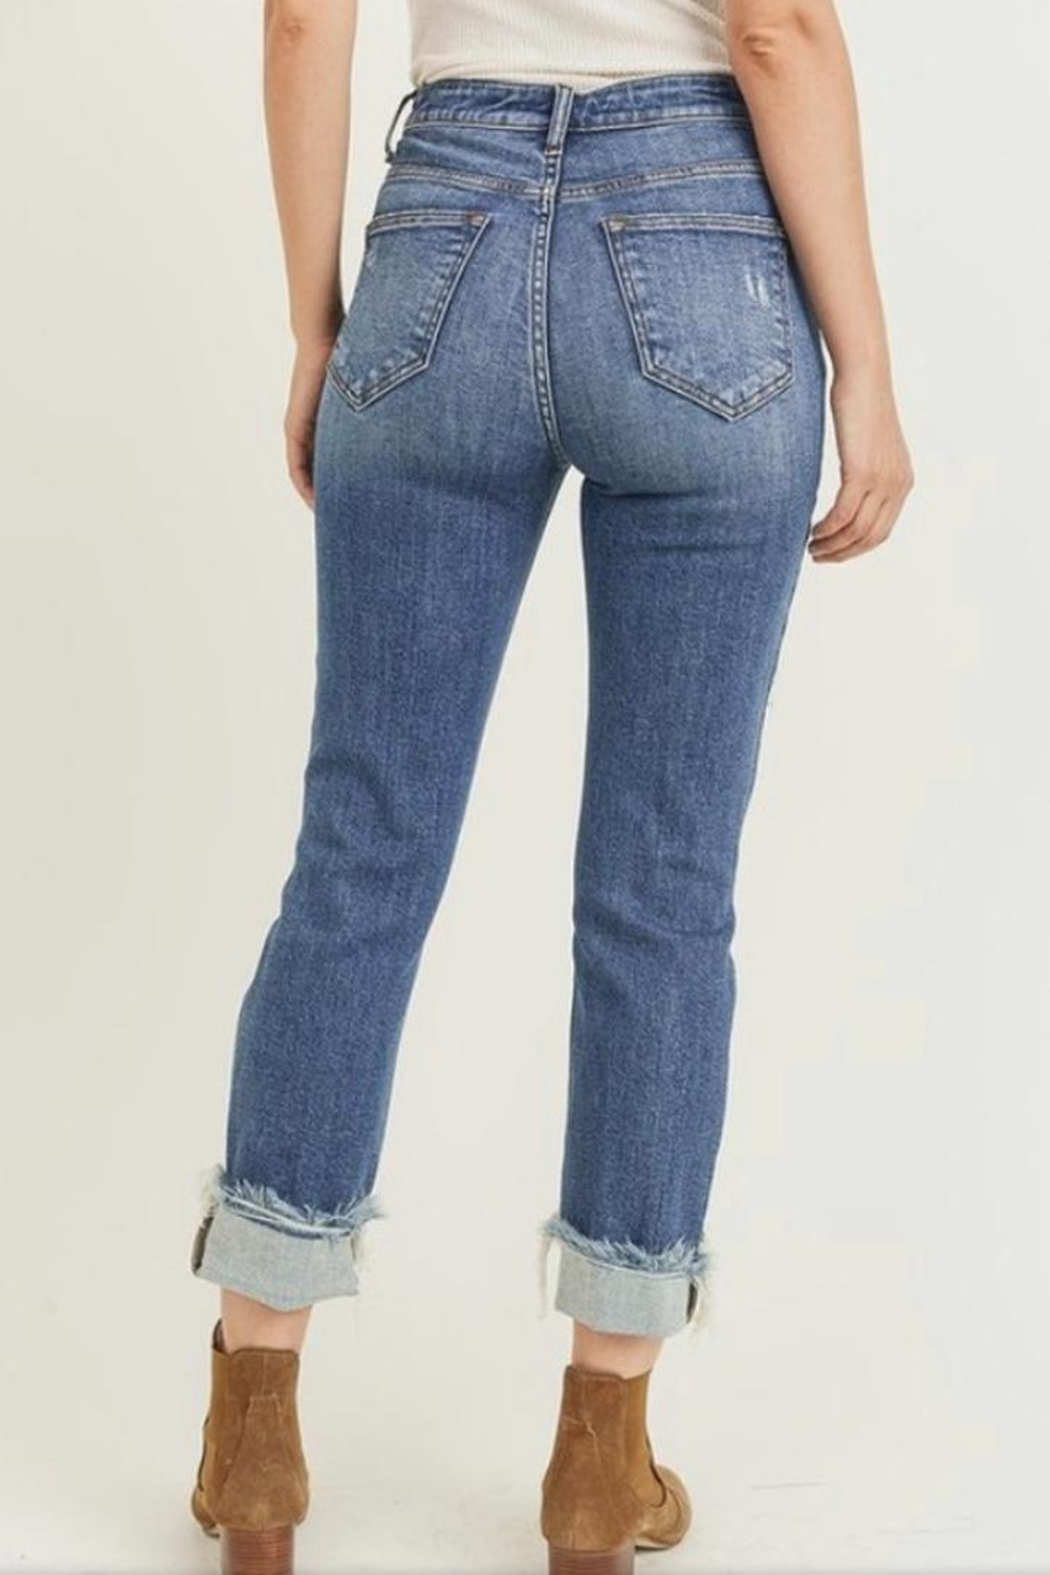 Risen Jeans  Cuff Distressed Jeans - Side Cropped Image